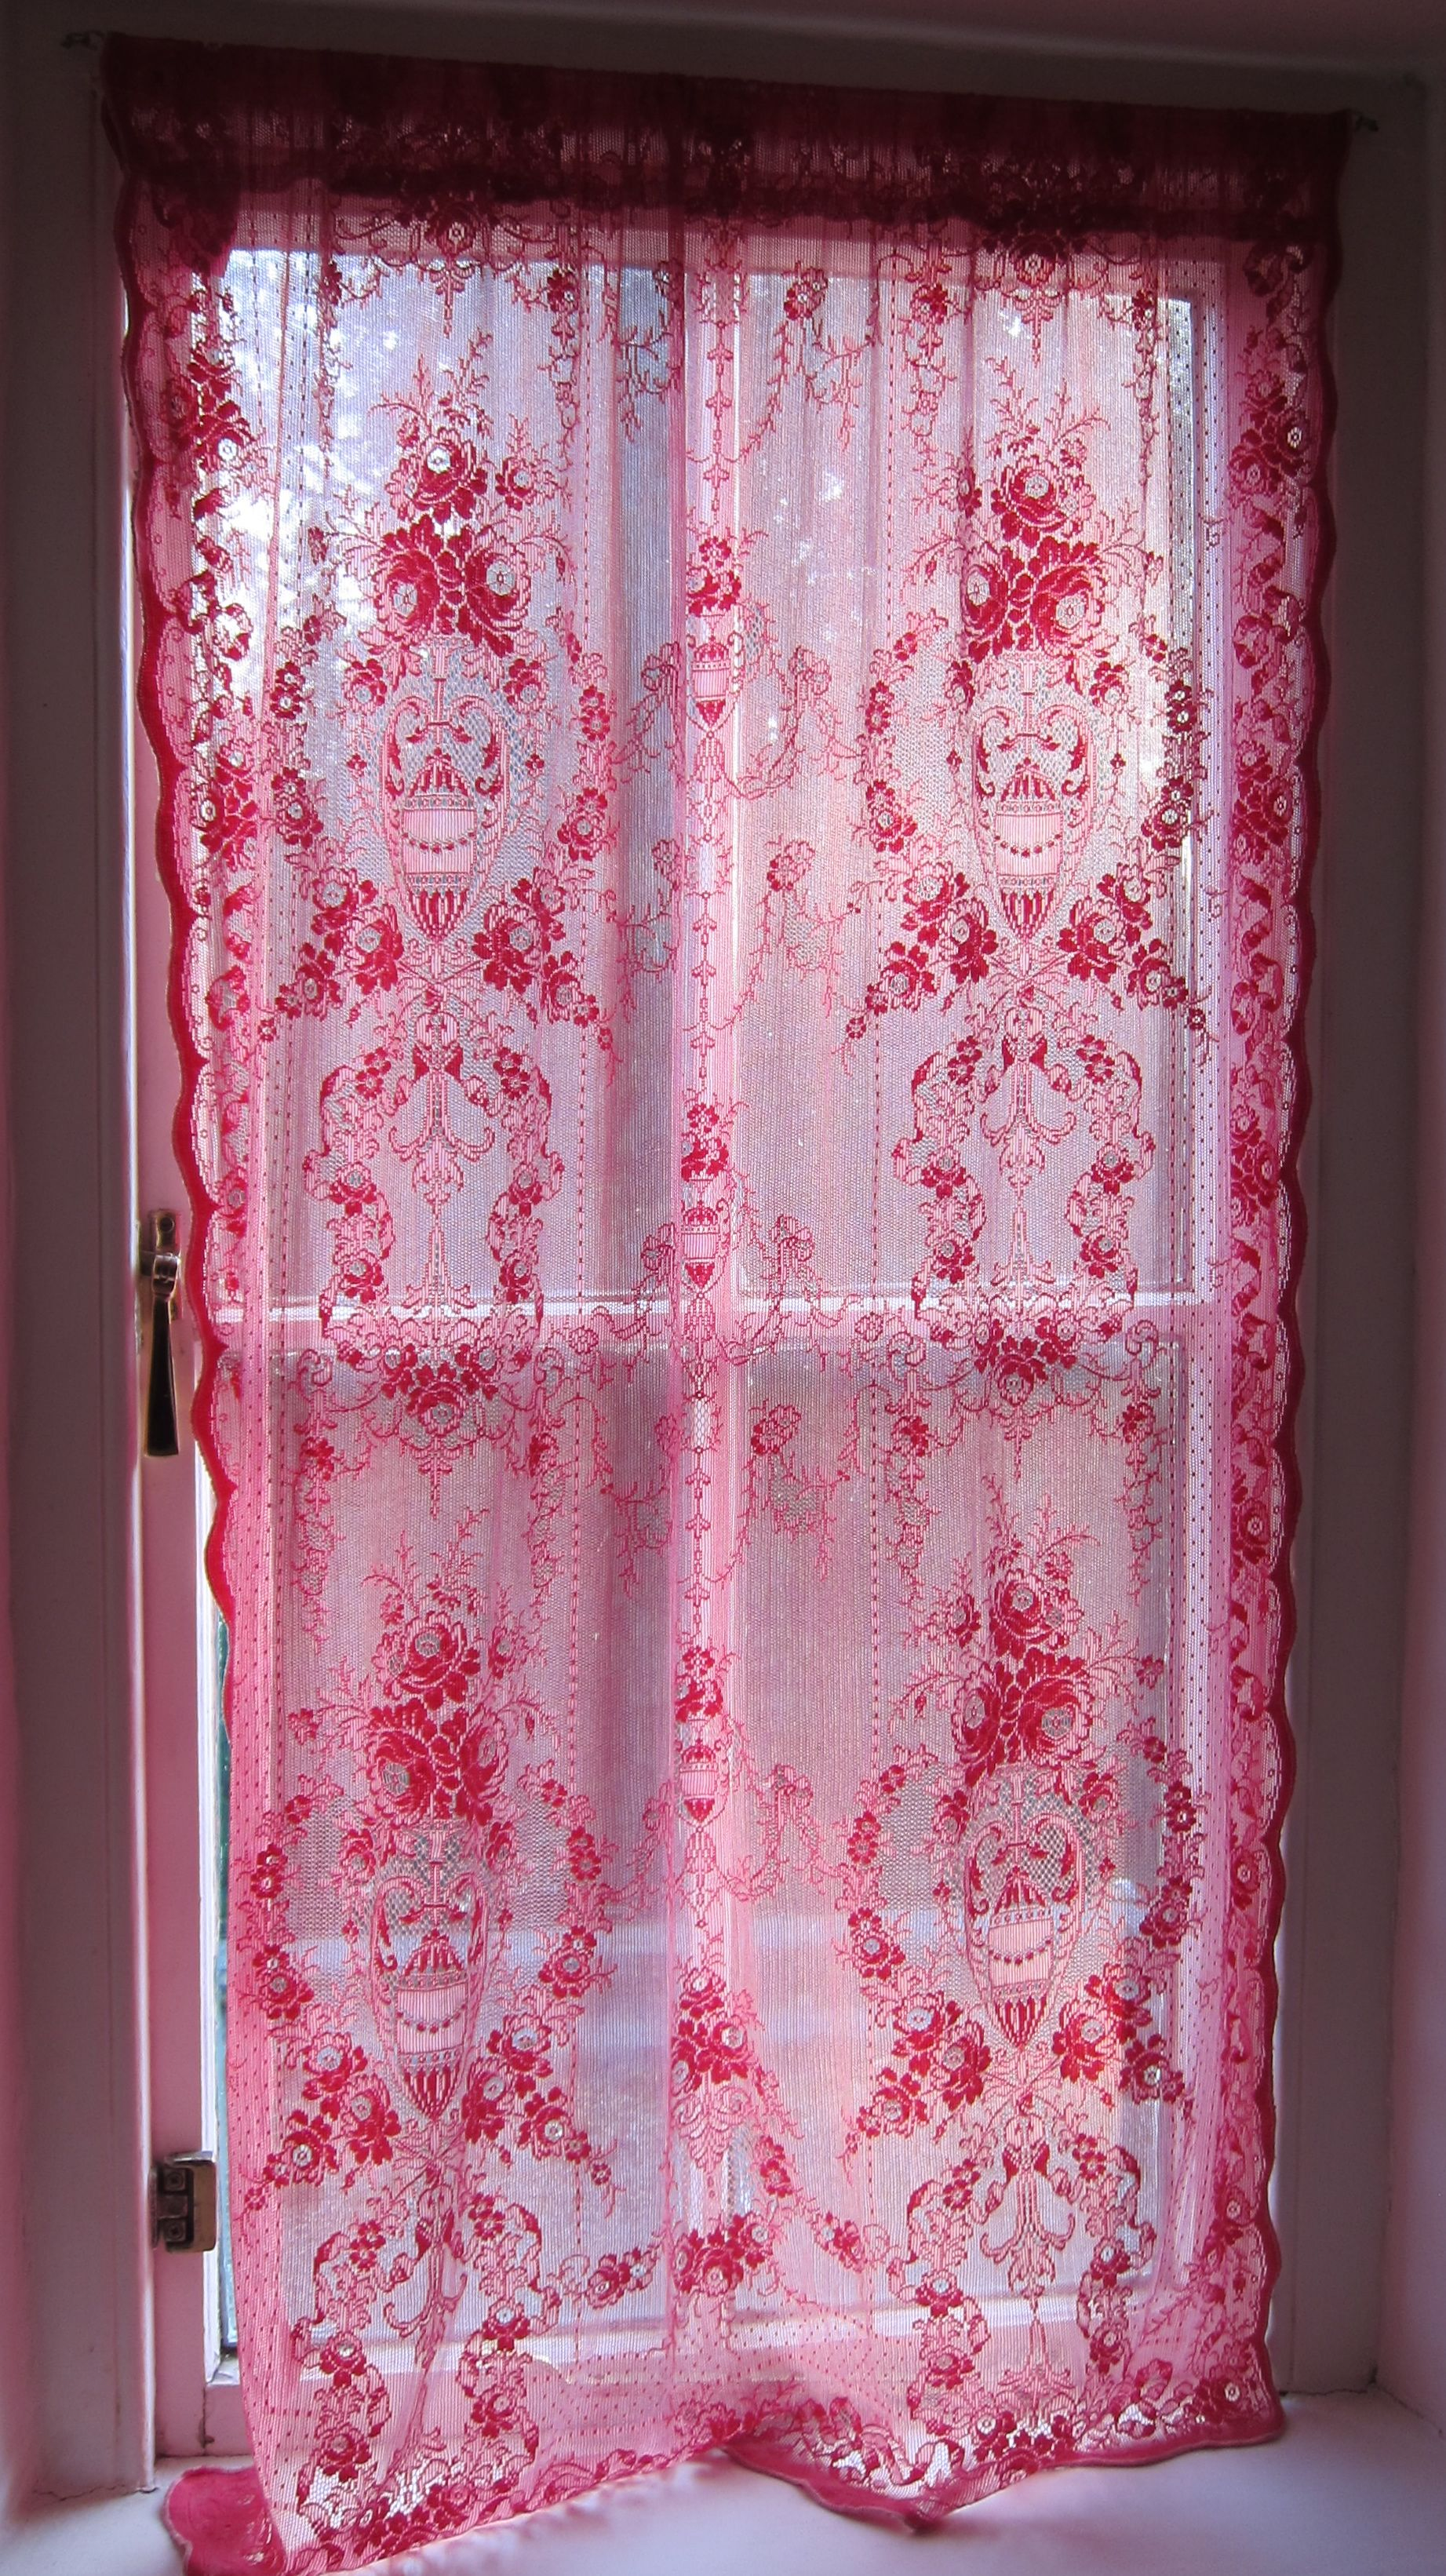 Pink Lace Curtain By Keet